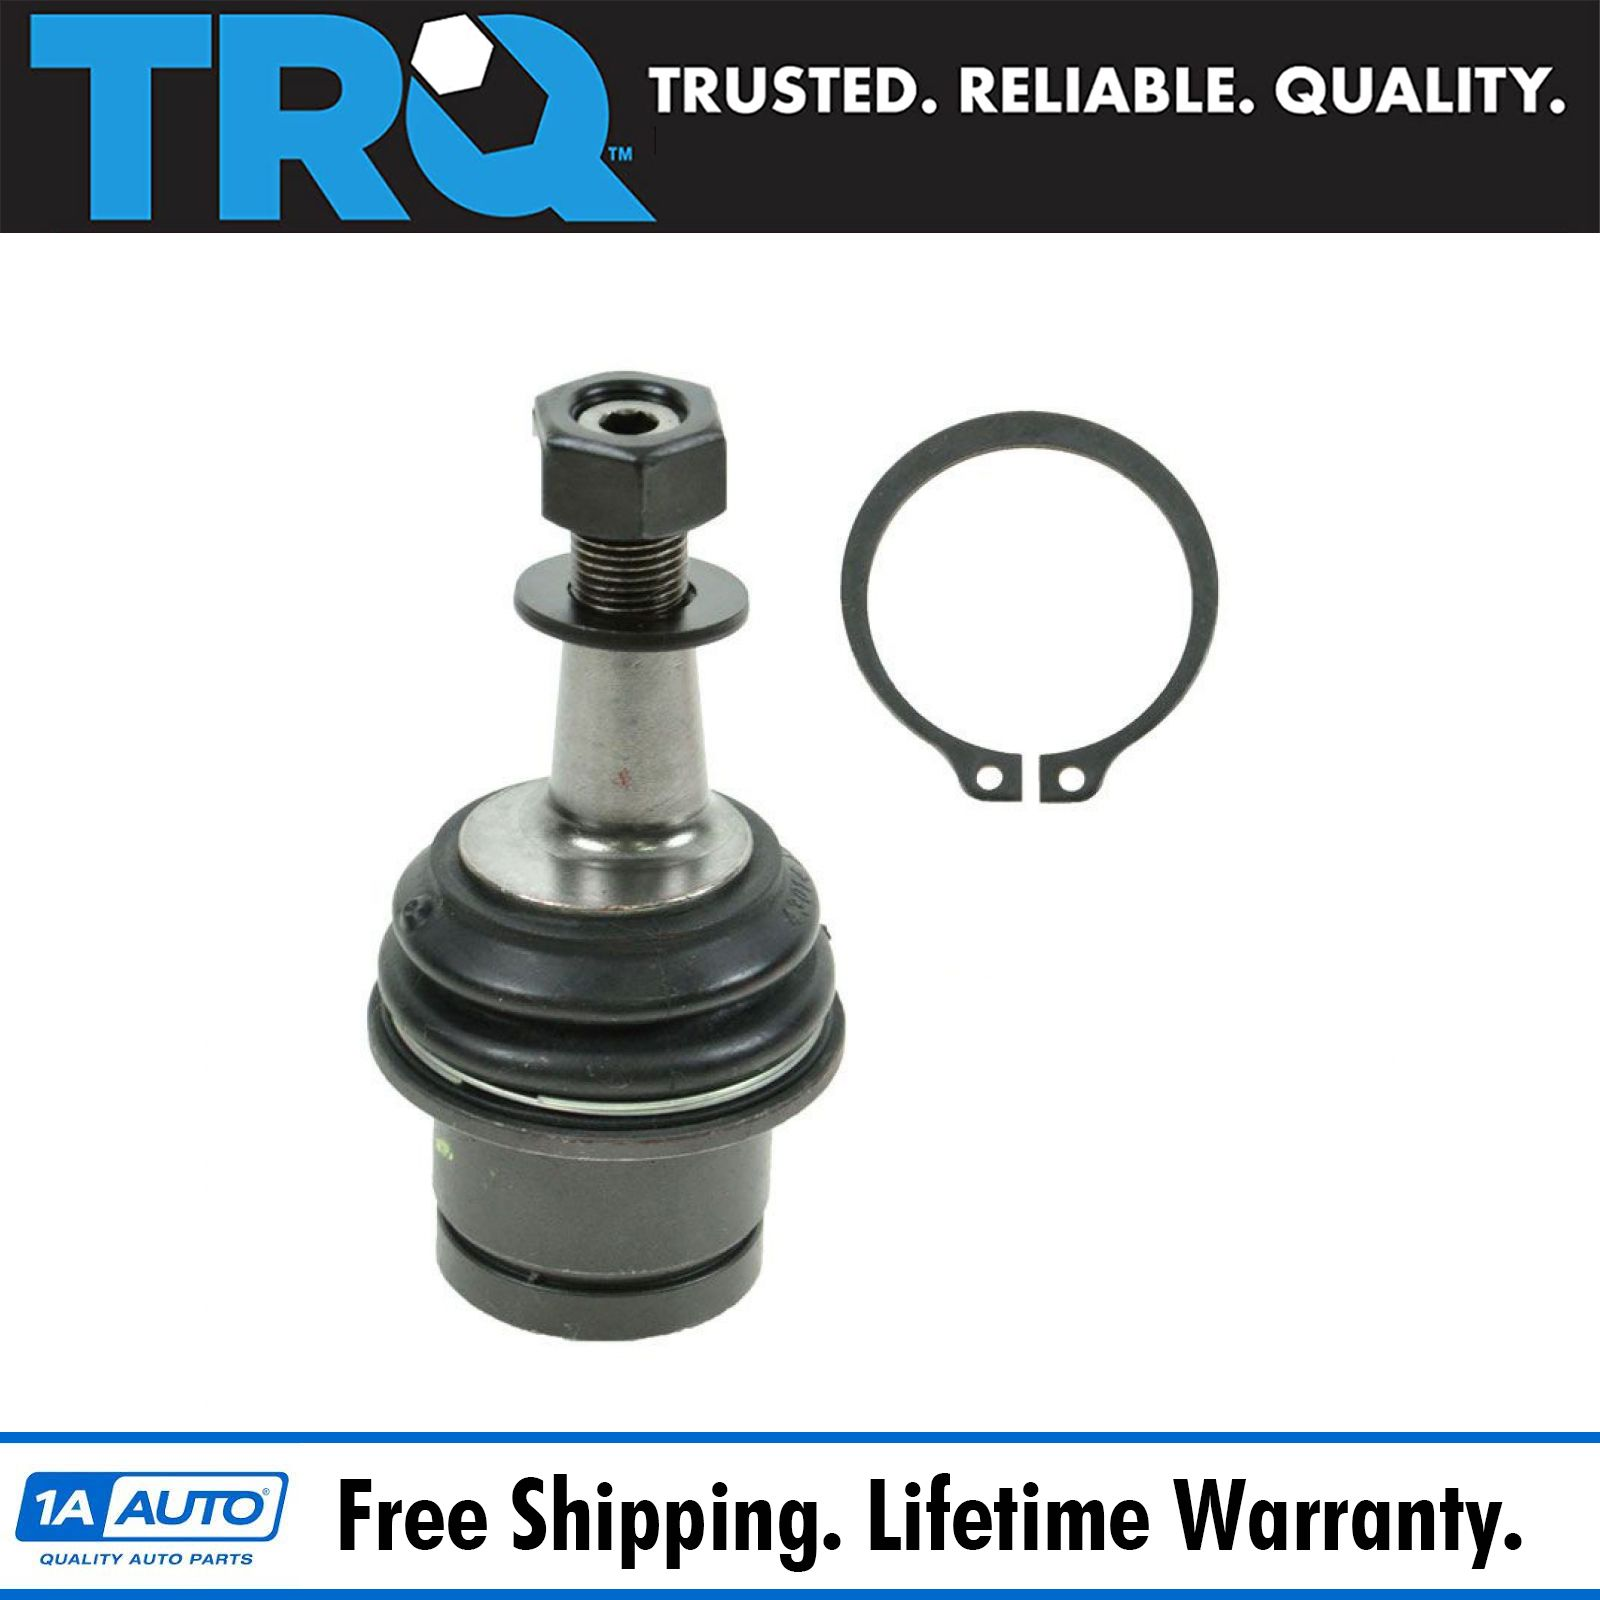 2014 Chrysler 300 Clevis Left Front Suspension Awd: Front Lower Ball Joint Left Or Right For Chrysler 300